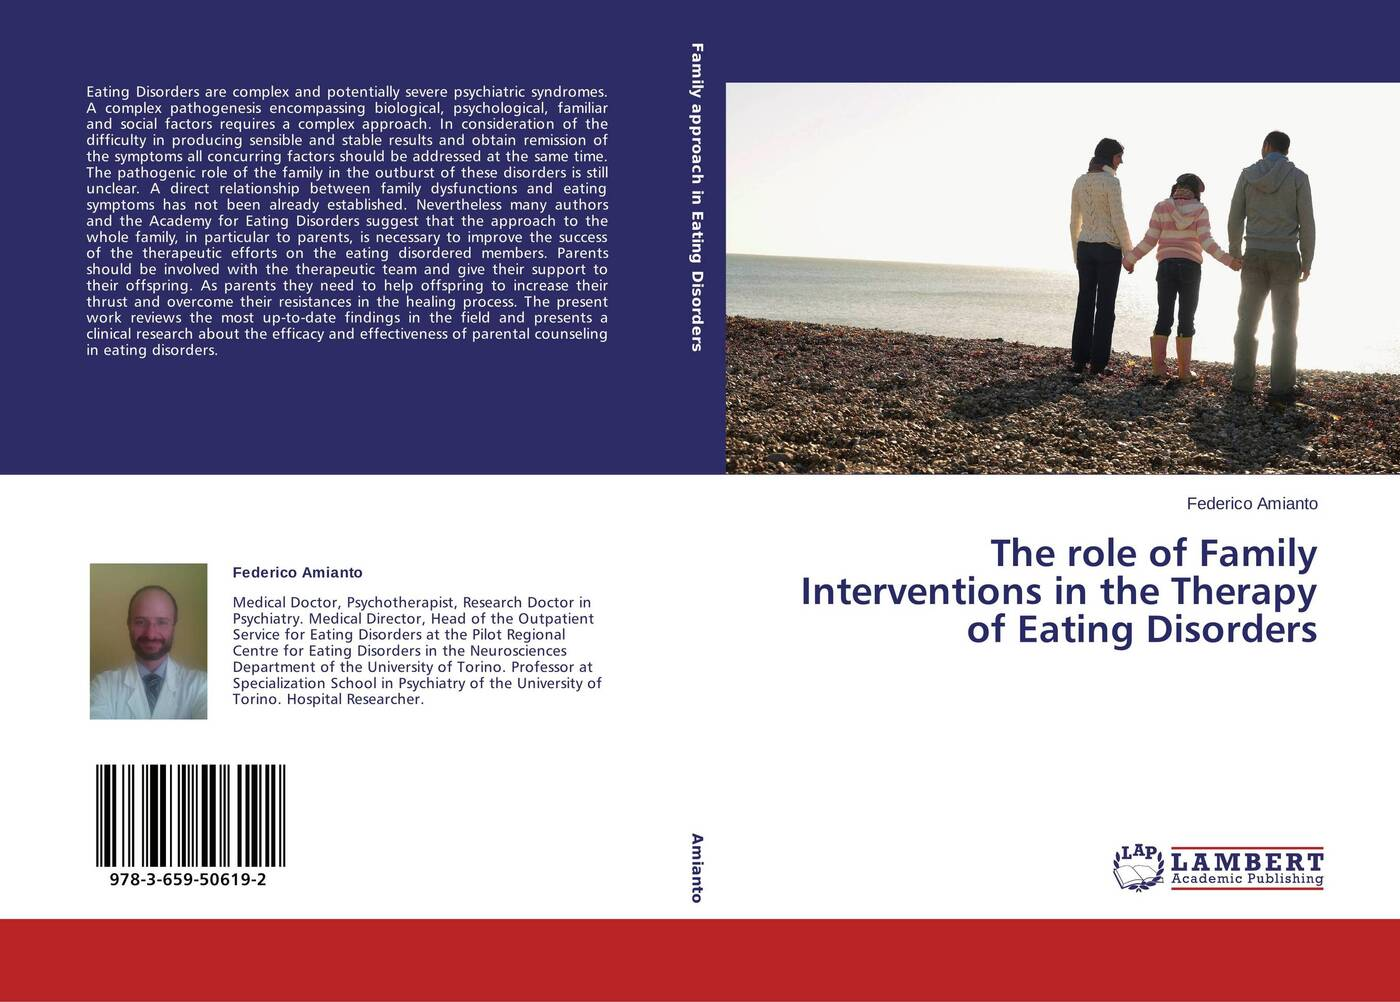 Federico Amianto The role of Family Interventions in the Therapy of Eating Disorders levine michael p the wiley handbook of eating disorders